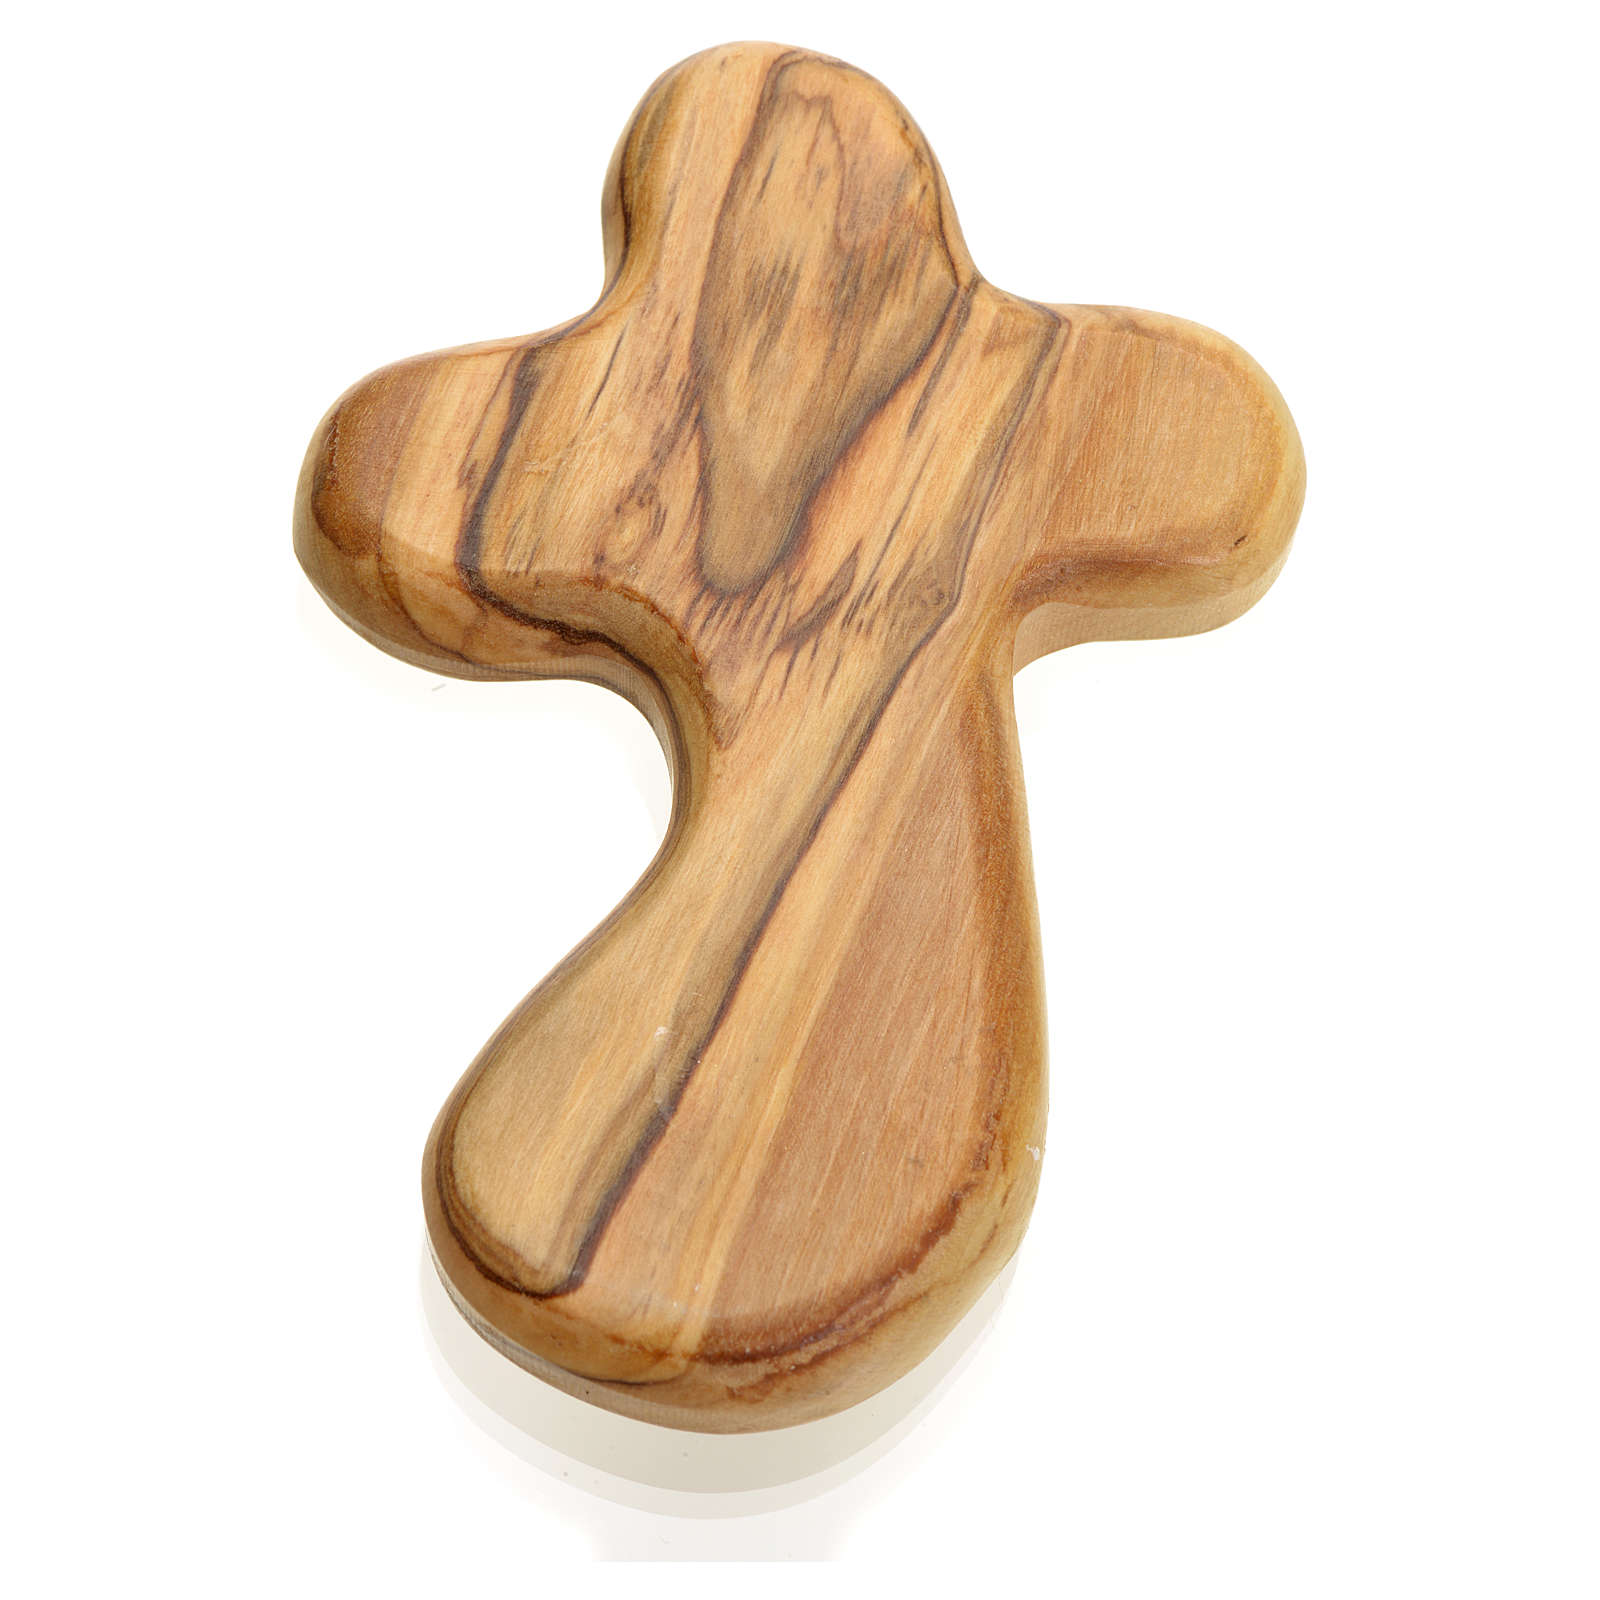 Key of Life in Holy Land olive wood palm cross 4